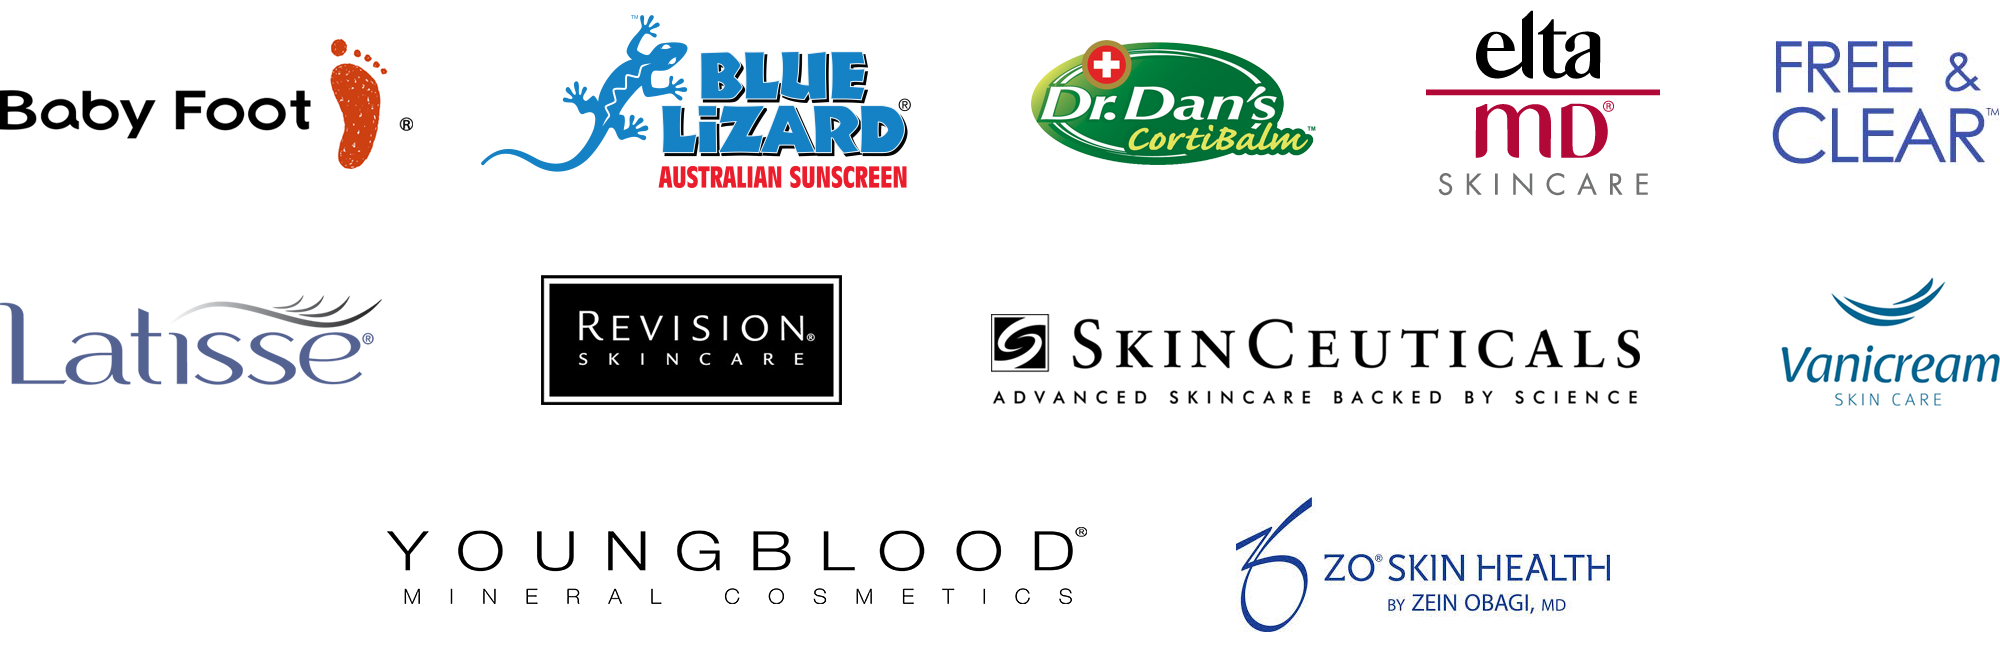 Shades Valley Dermatology carries Elta MD, Revision Skincare, ZO Skin Health, Free and Clear, Vanicream, Latisse, Youngblood Cosmetics, SkinCeuticals, BabyFoot, Blue Lizard, and Dr. Dan's skin care products.